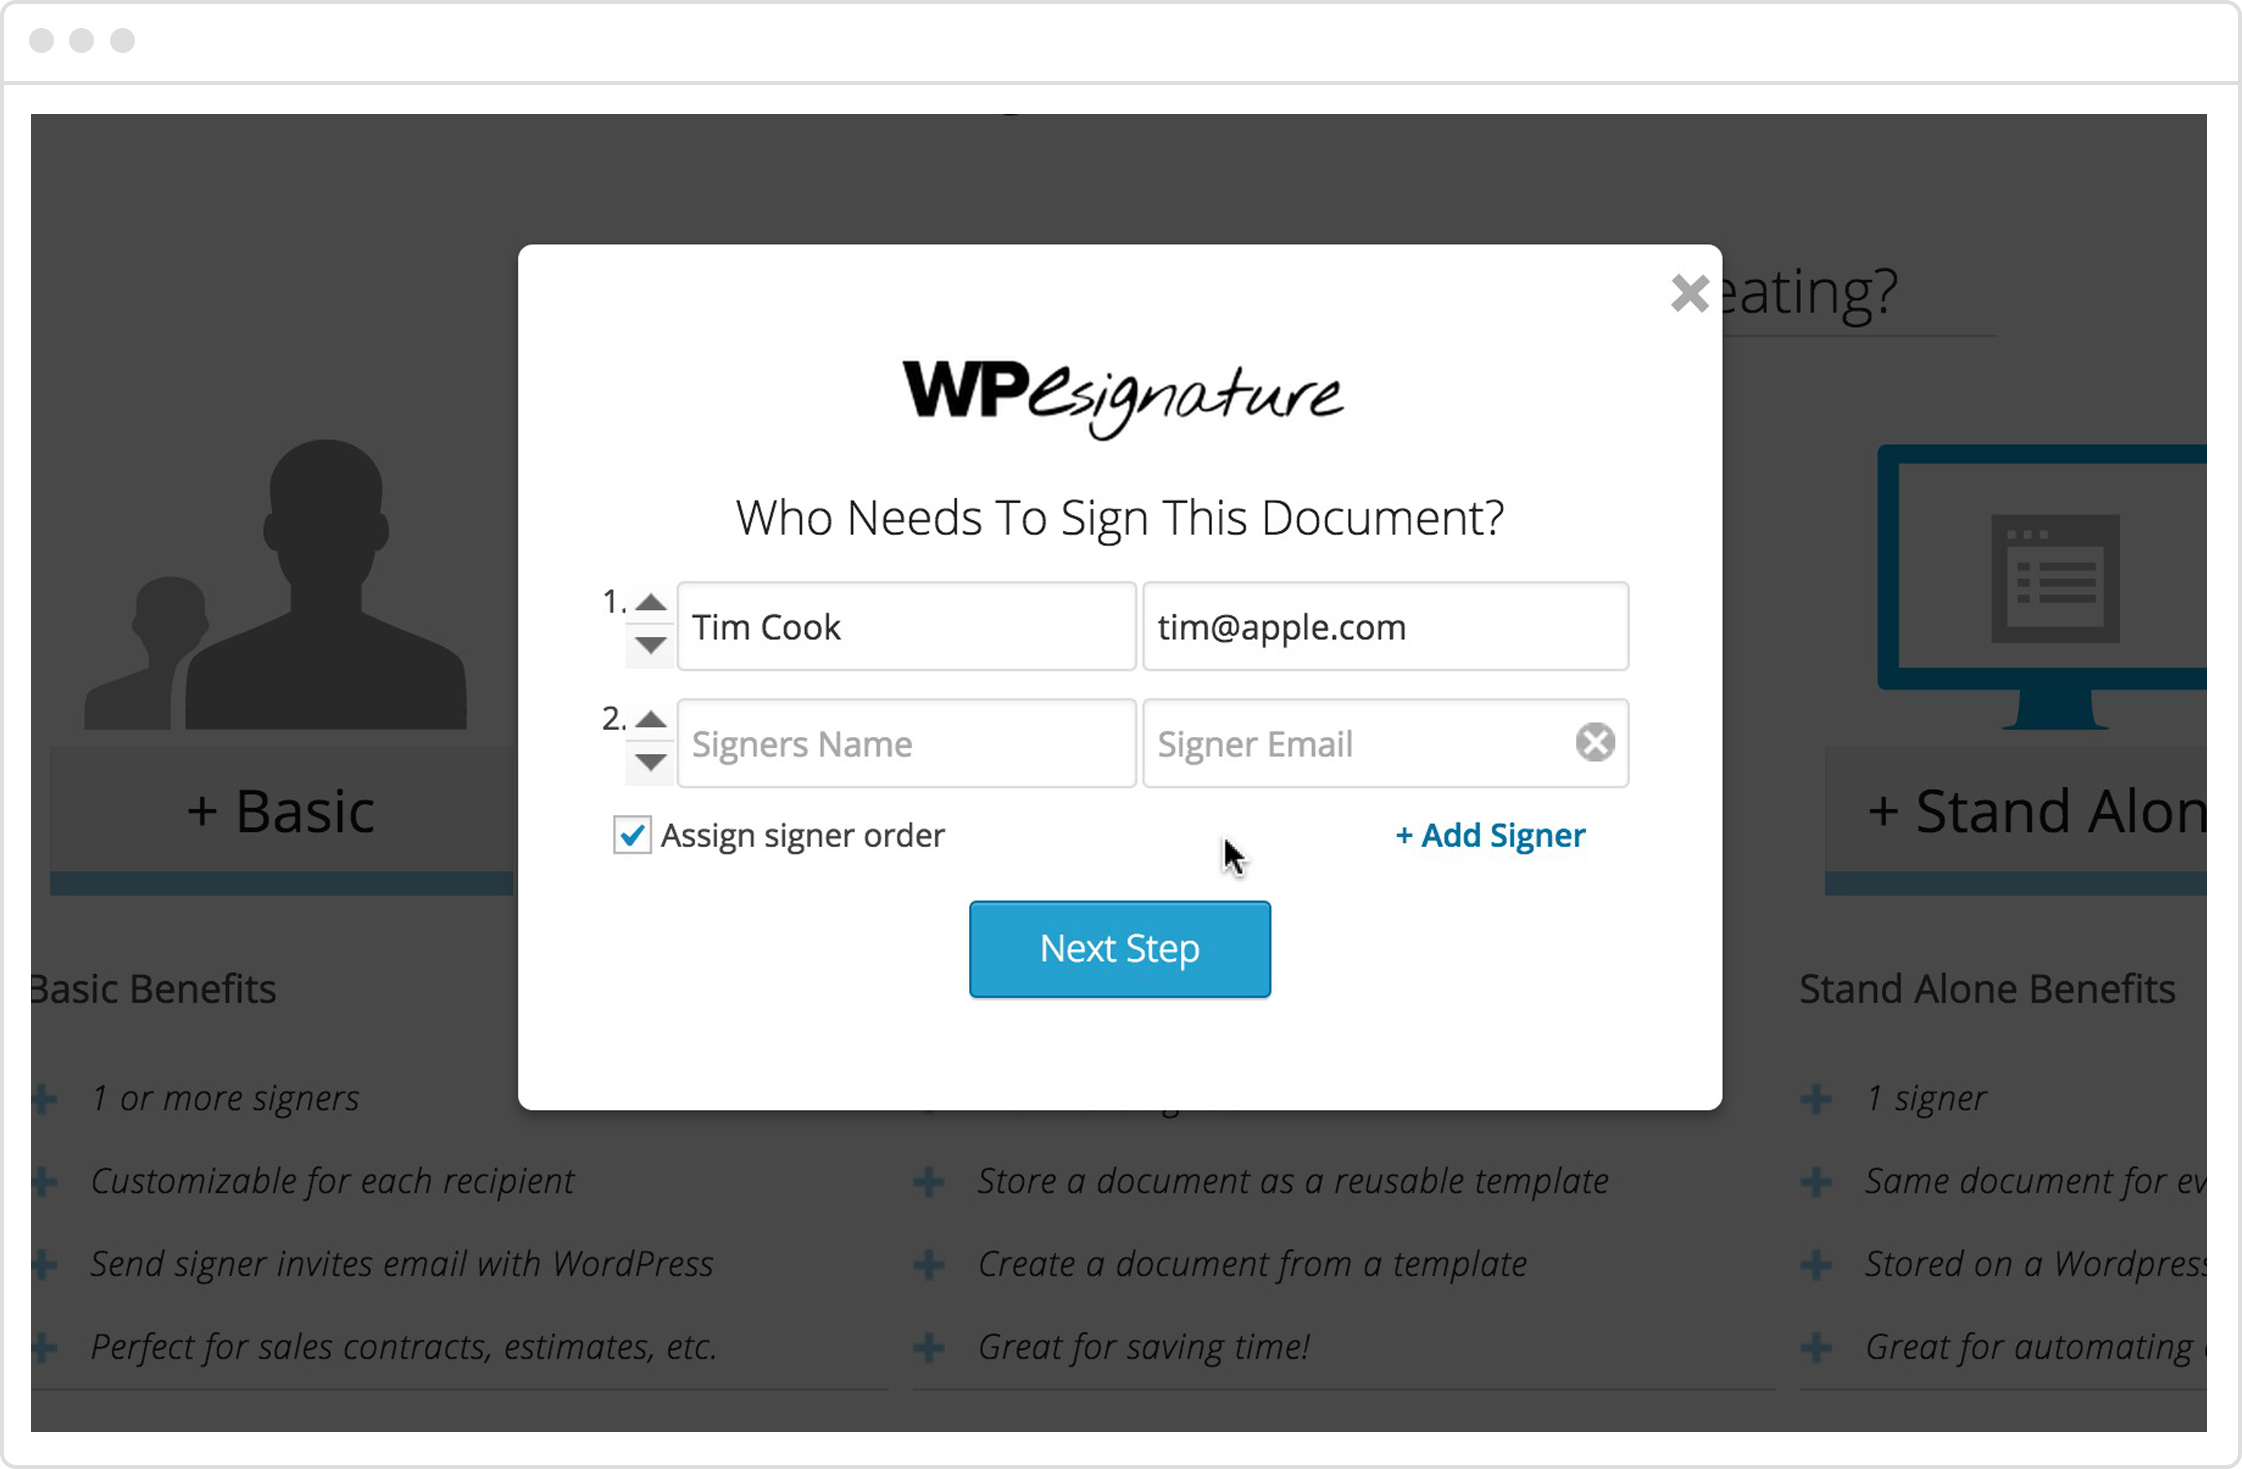 WP Digital E-Signature Demo - Easily Add and Assignthe signing order of signers for your document